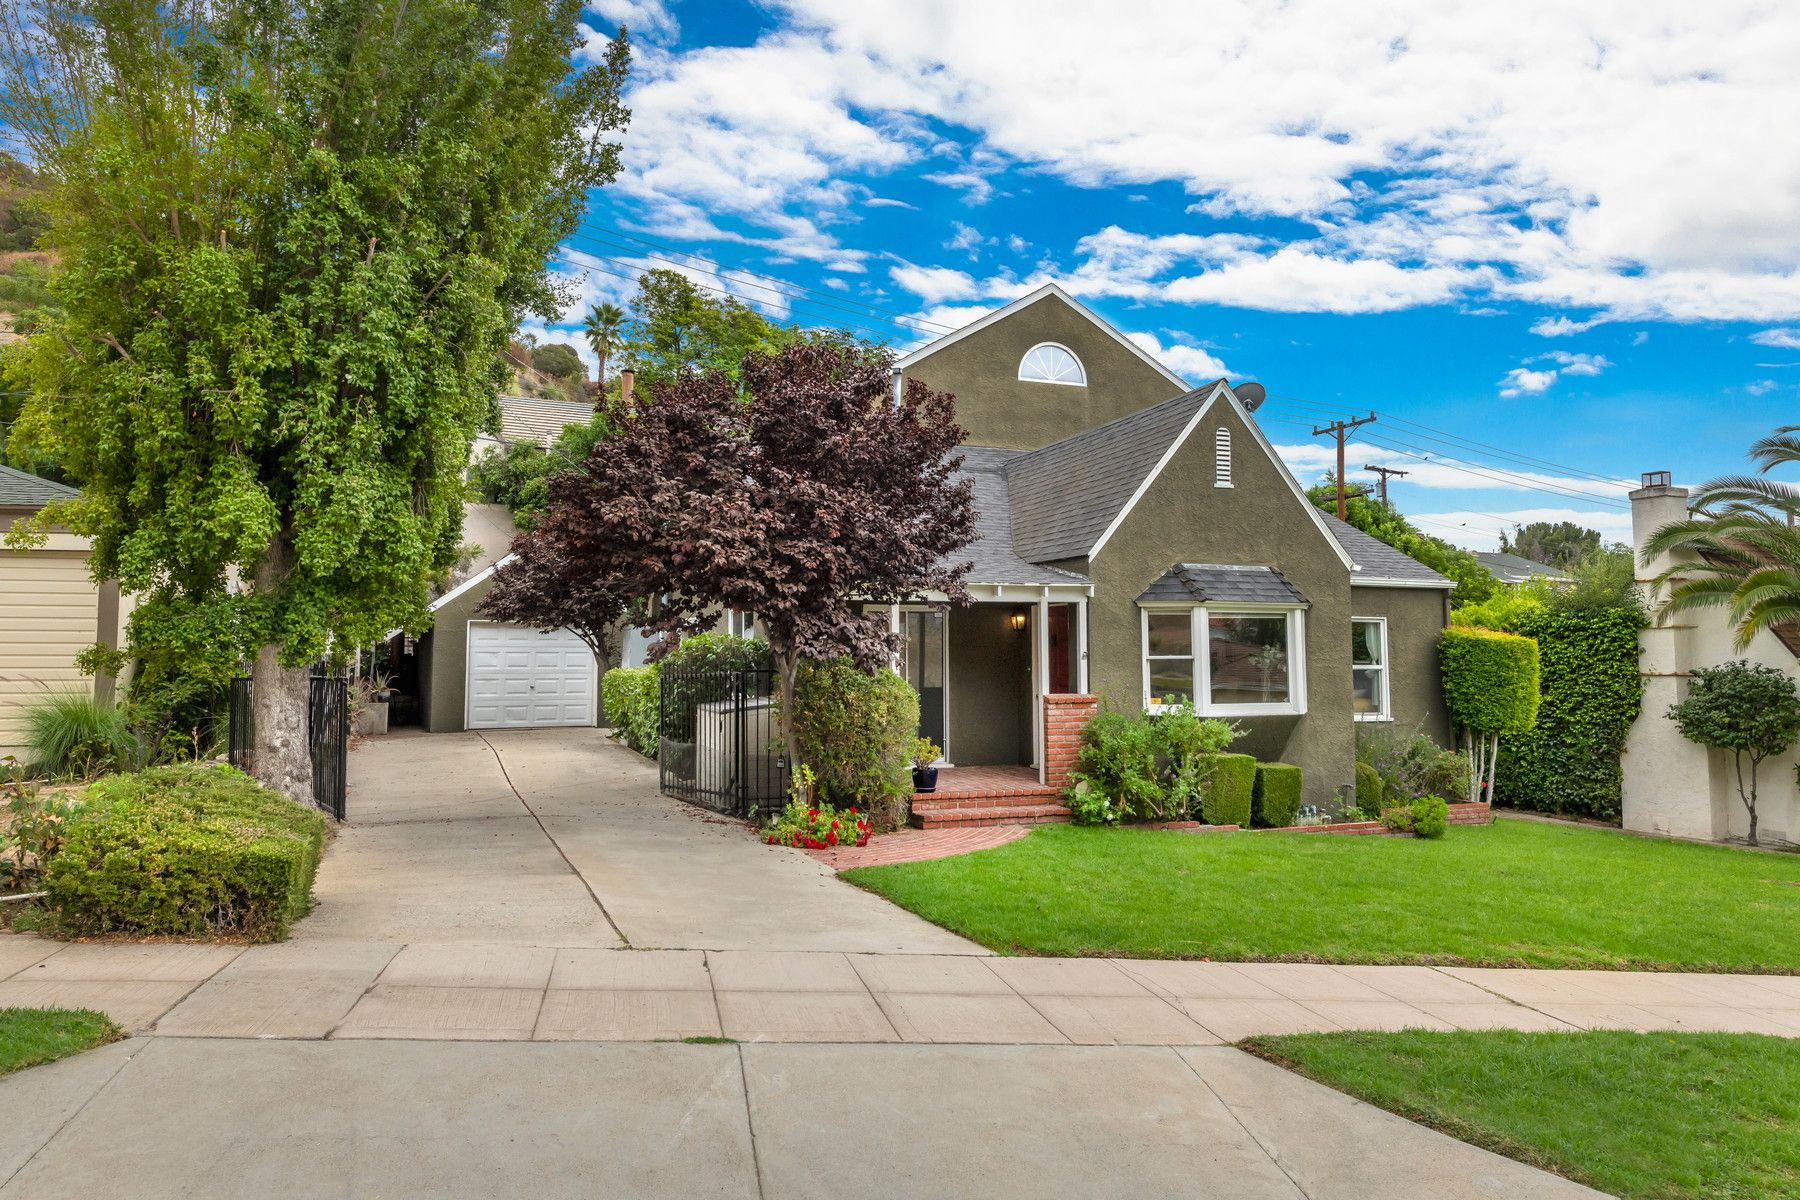 Single Family Homes for Sale at Charming Traditional in Glendale 750 Glenmore Boulevard Glendale, California 91206 United States